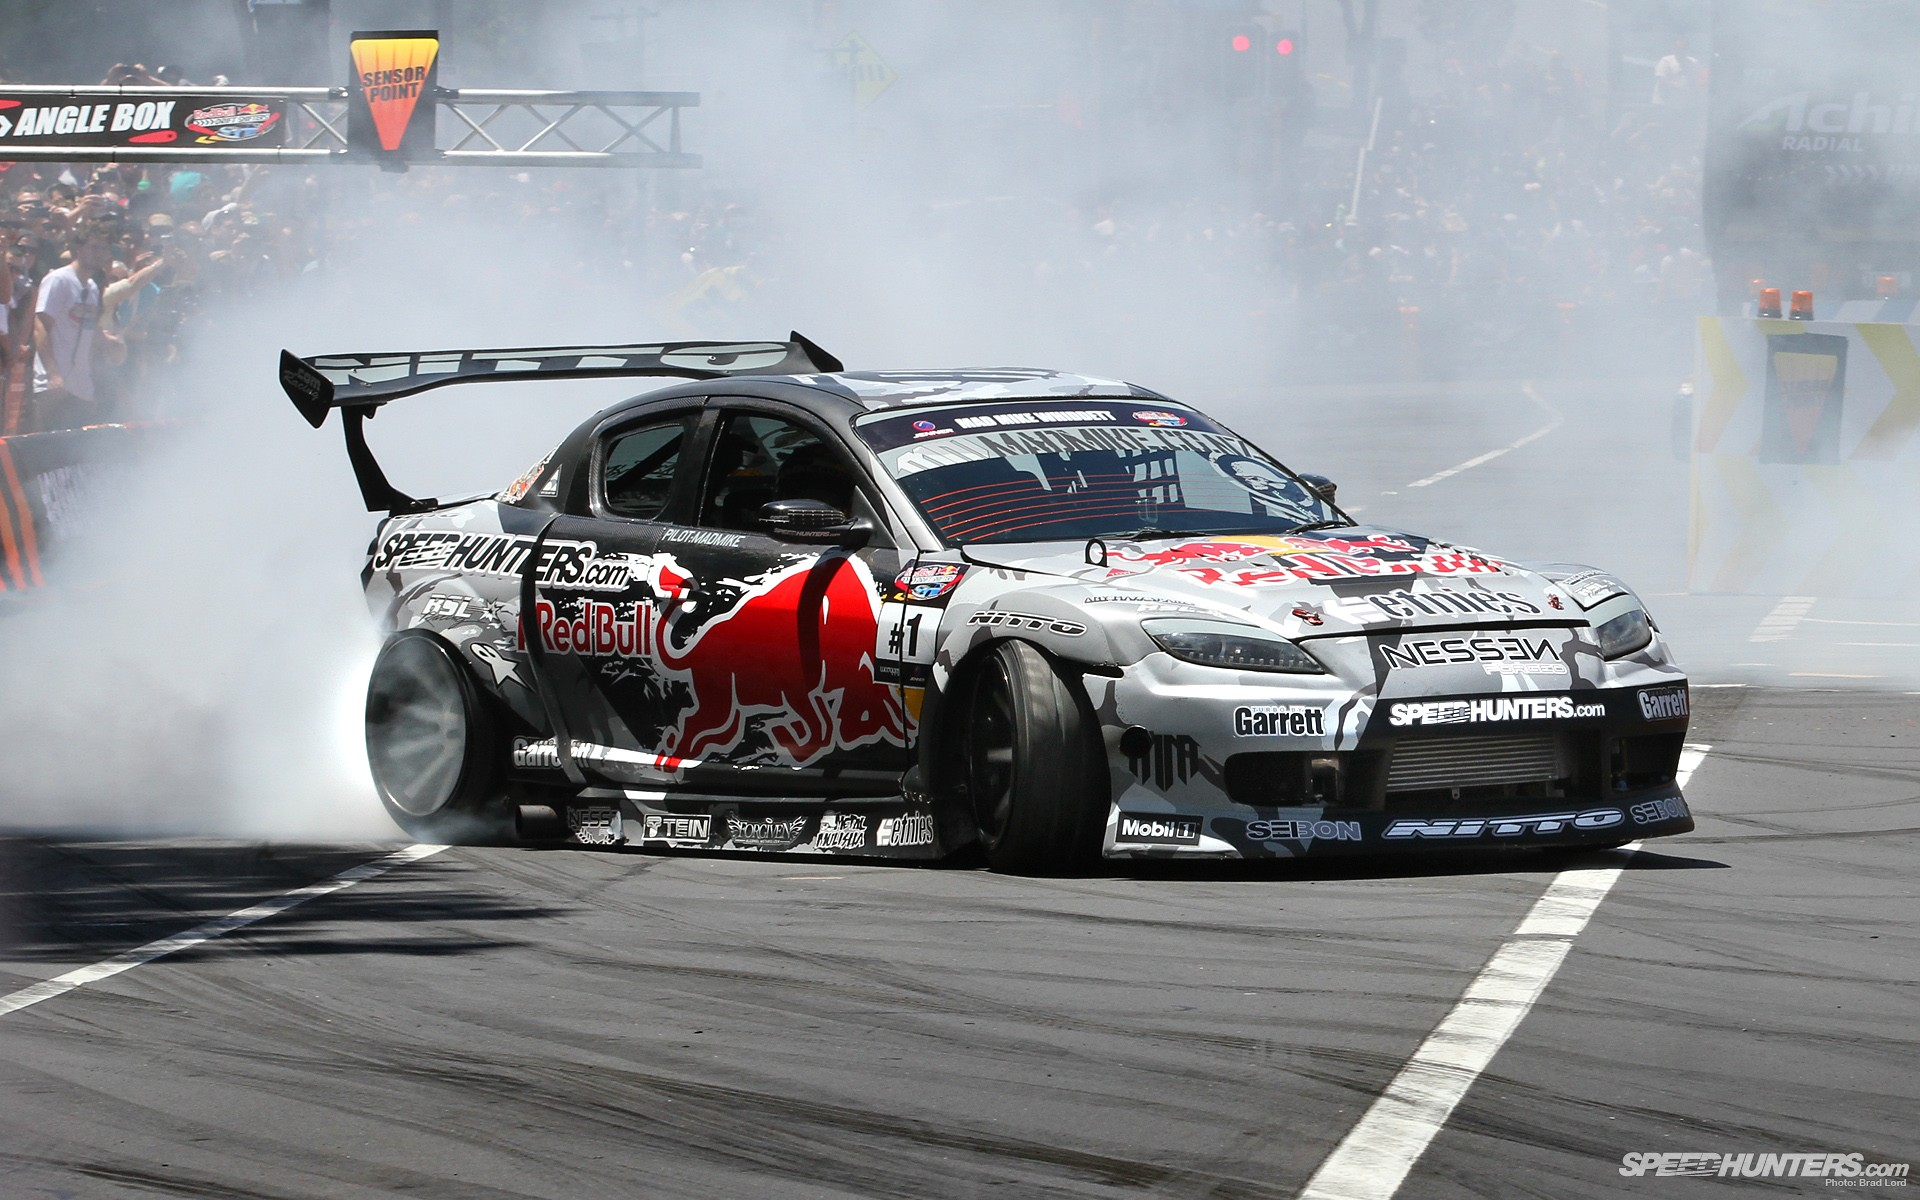 Cars Smoke Mazda Drift Wallpaper 1920x1200 222307 Wallpaperup